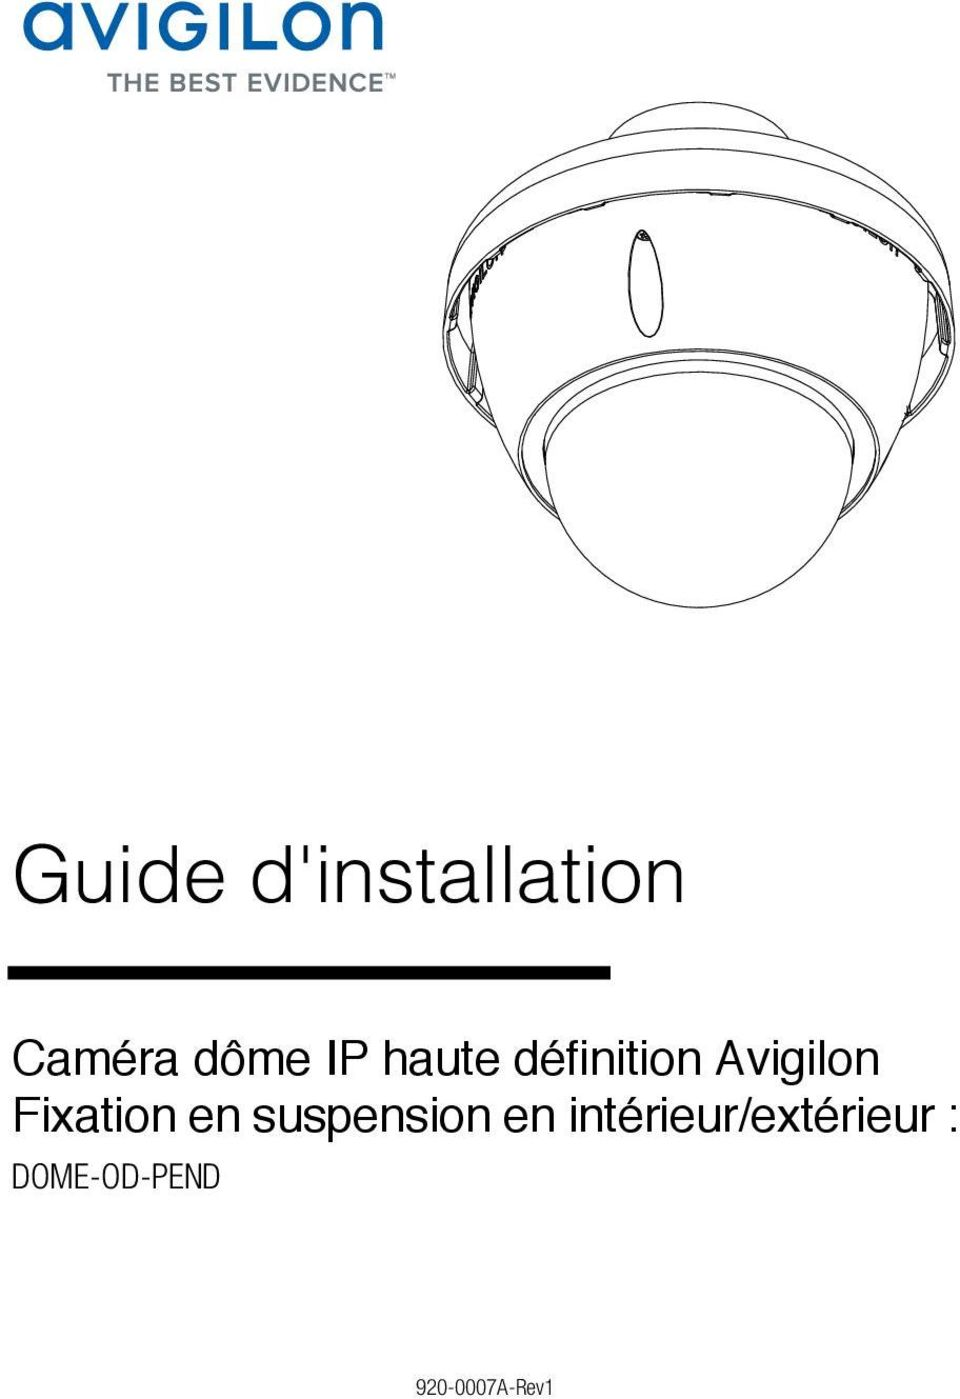 Fixation en suspension en